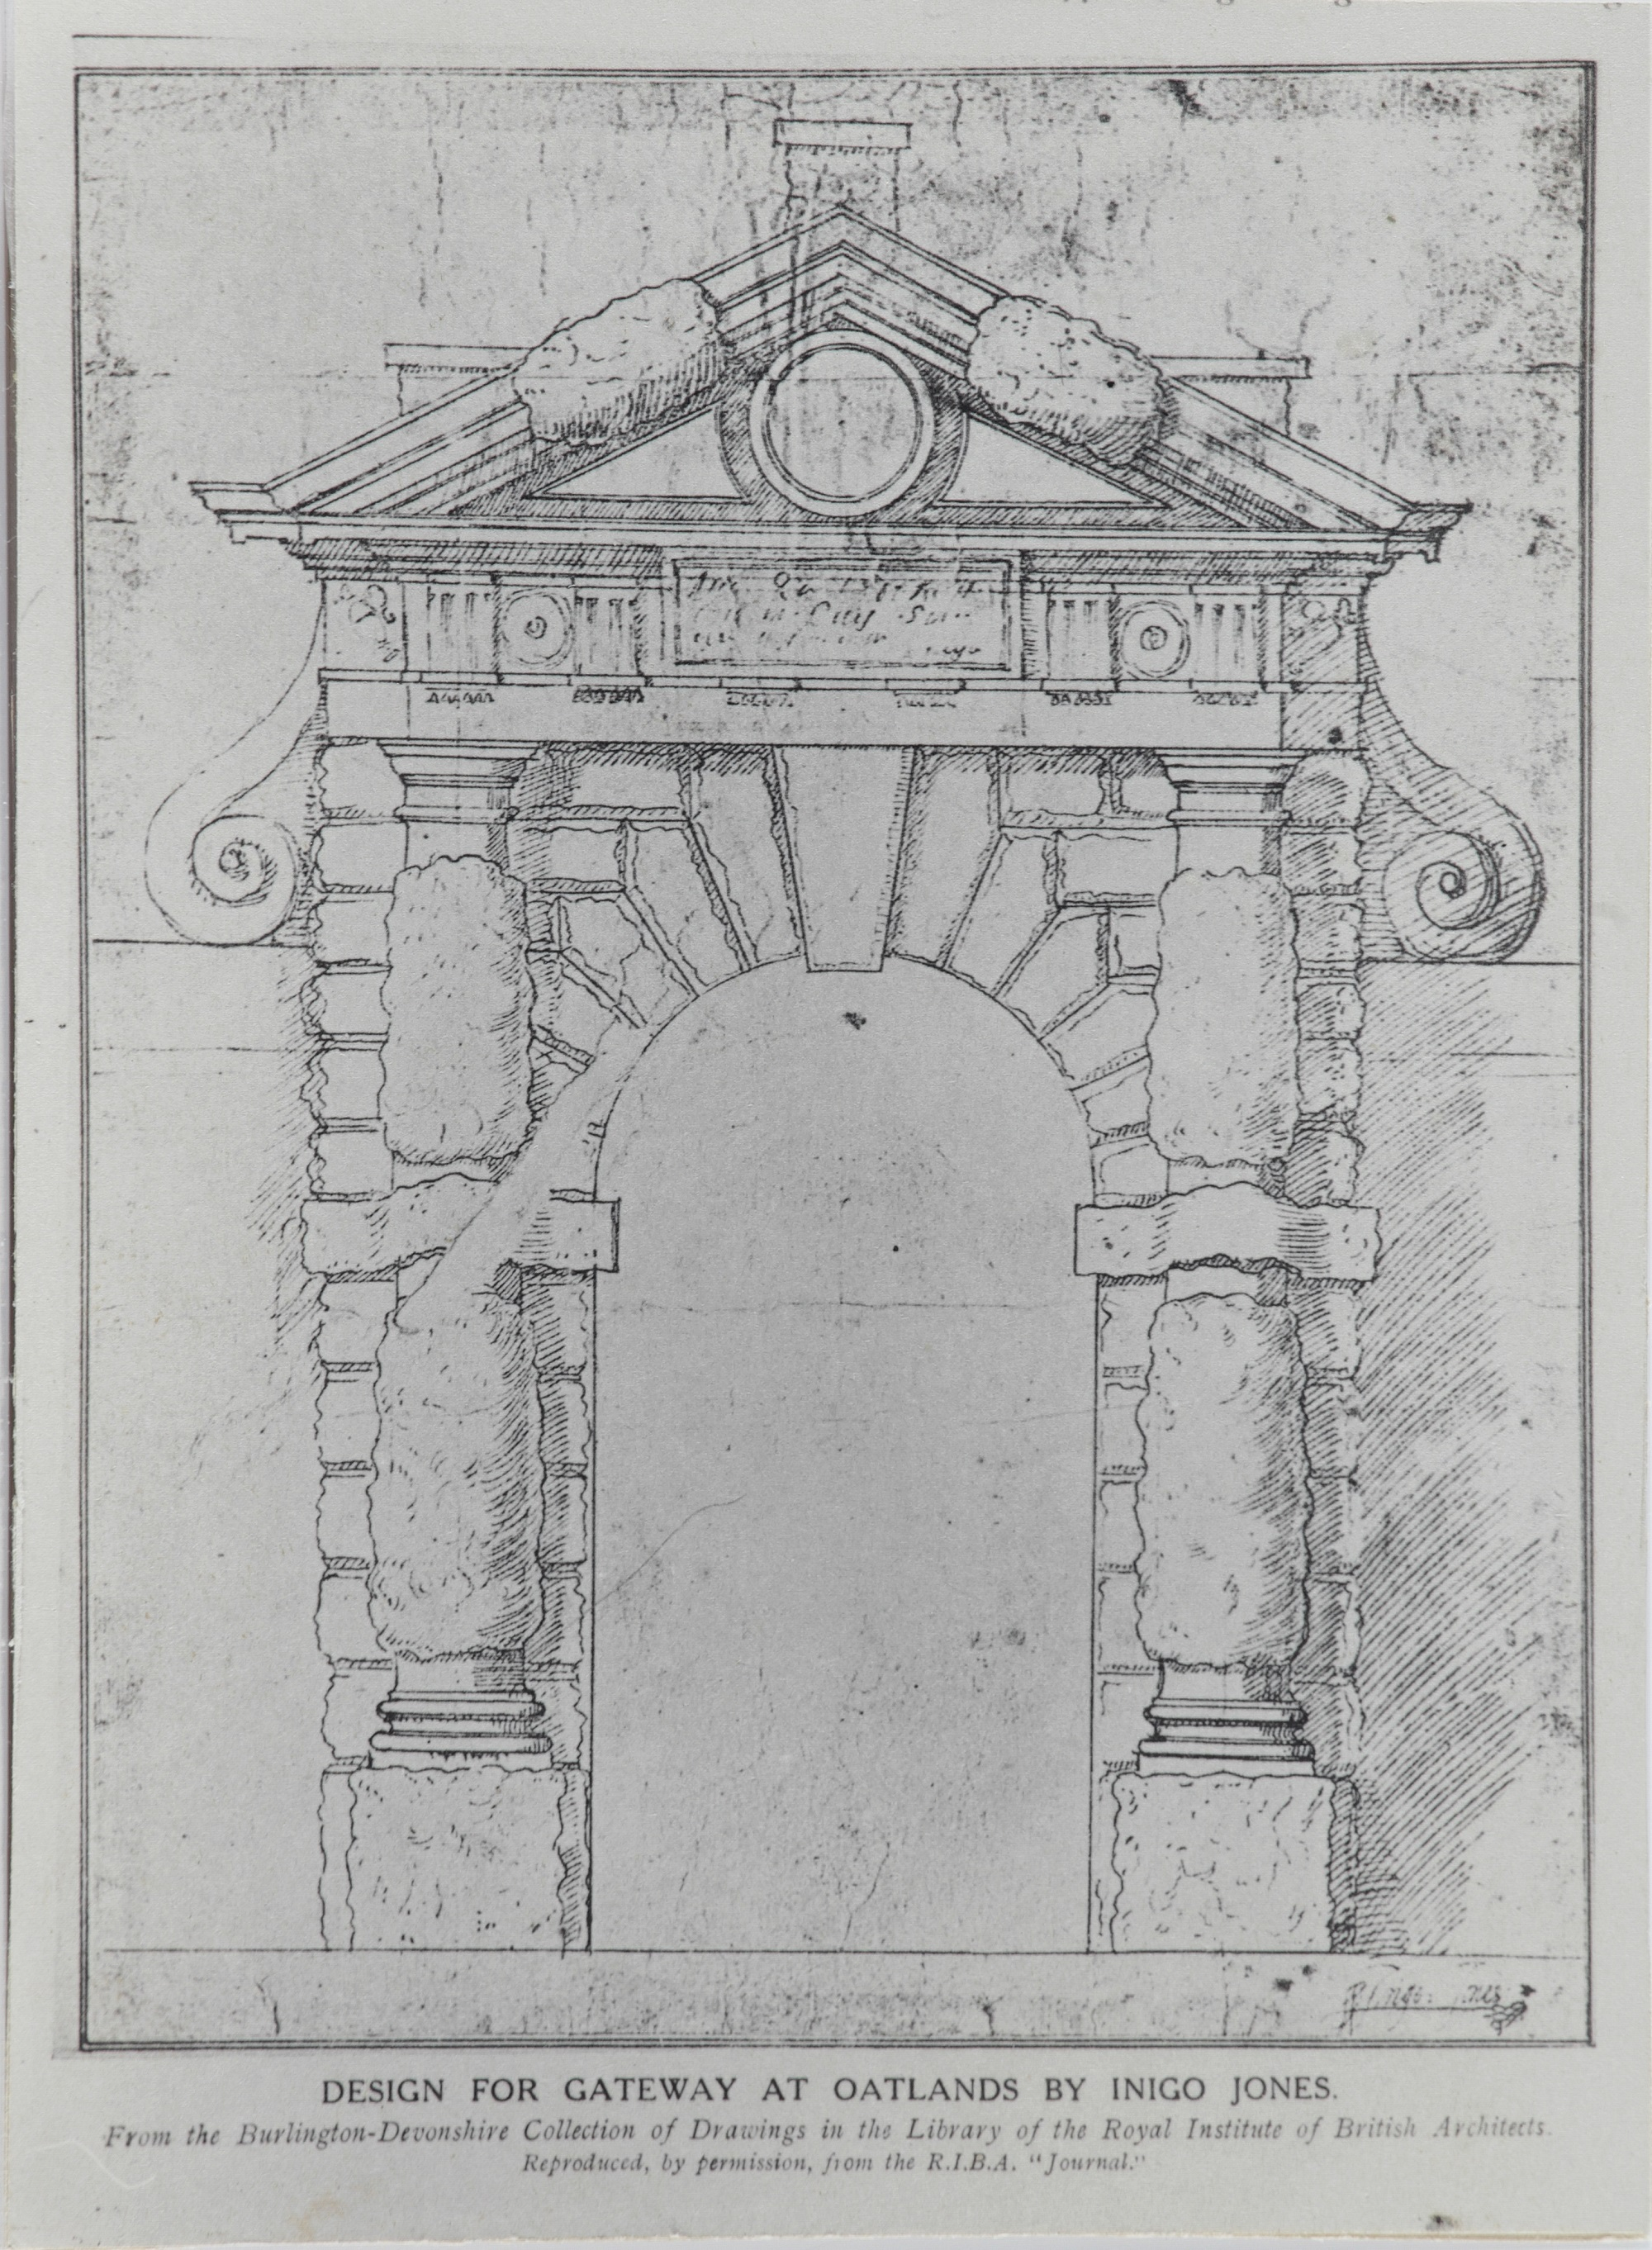 Black and white print on card of a drawing for a 'Design for a Gateway at Oatlands by Inigo Jones'.